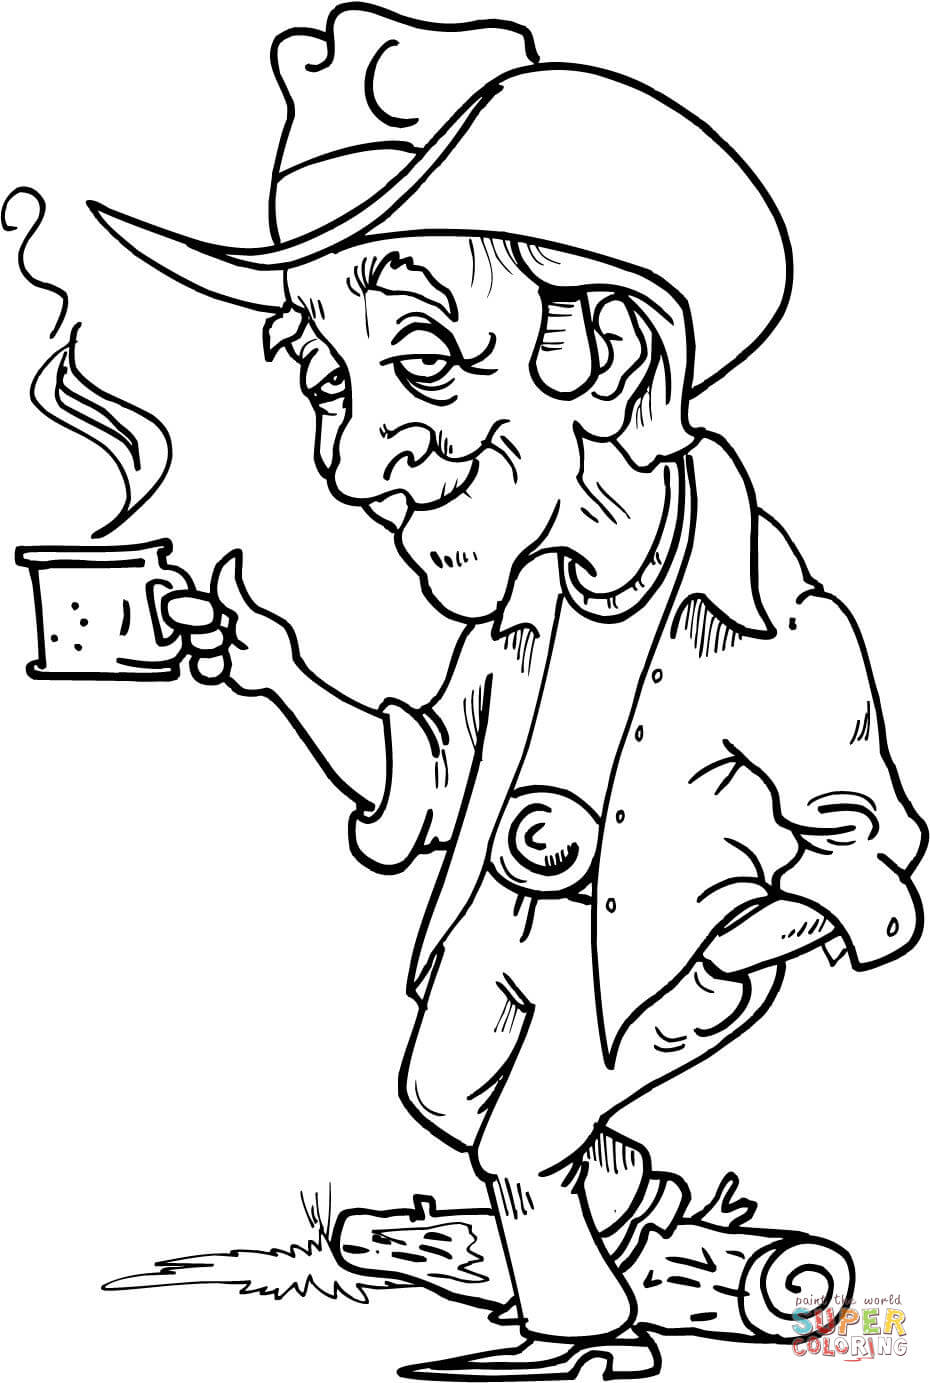 Cowboy Having A Hot Cup Of Coffee Coloring Page Free